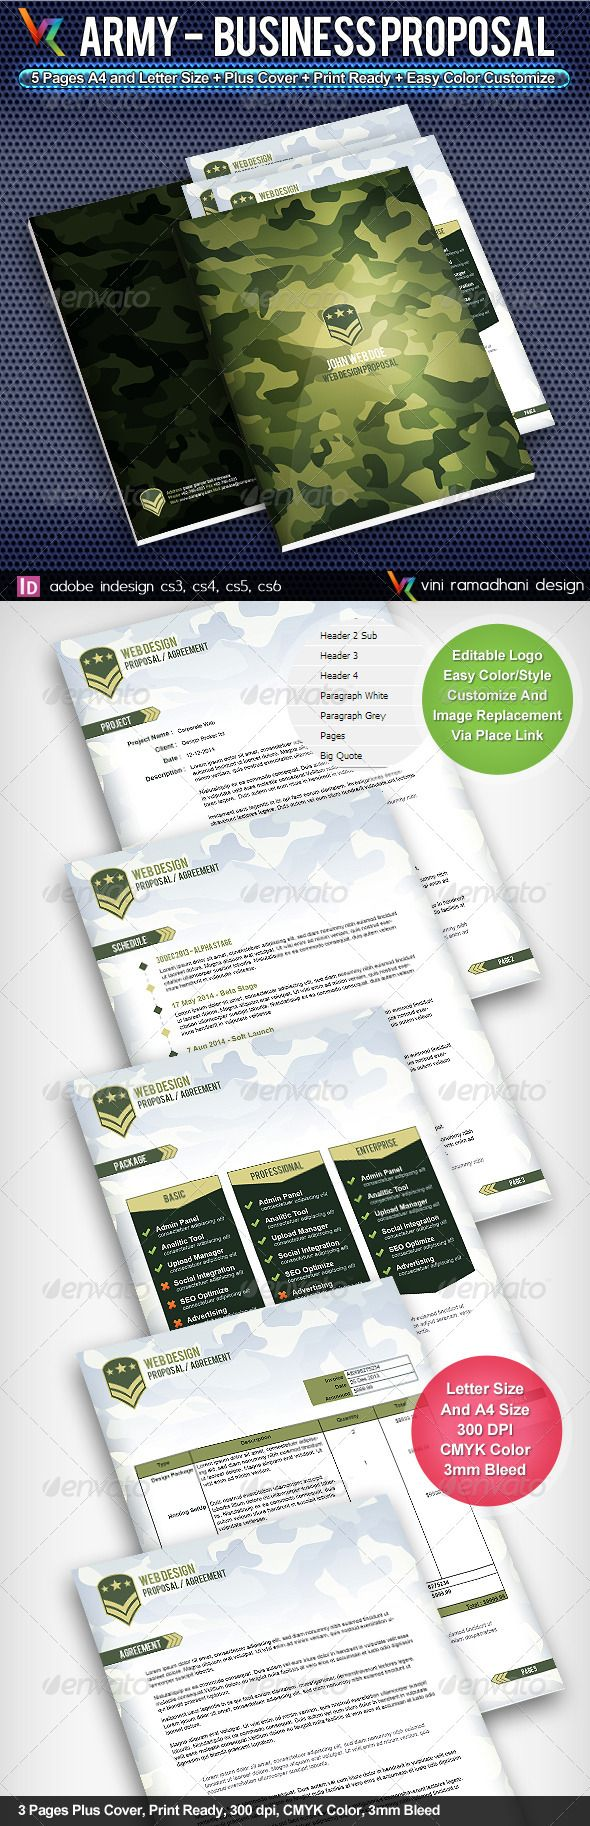 Standard Font Size For Resume Best Business Proposal Format Ideas Pinterest Army  Home Design .